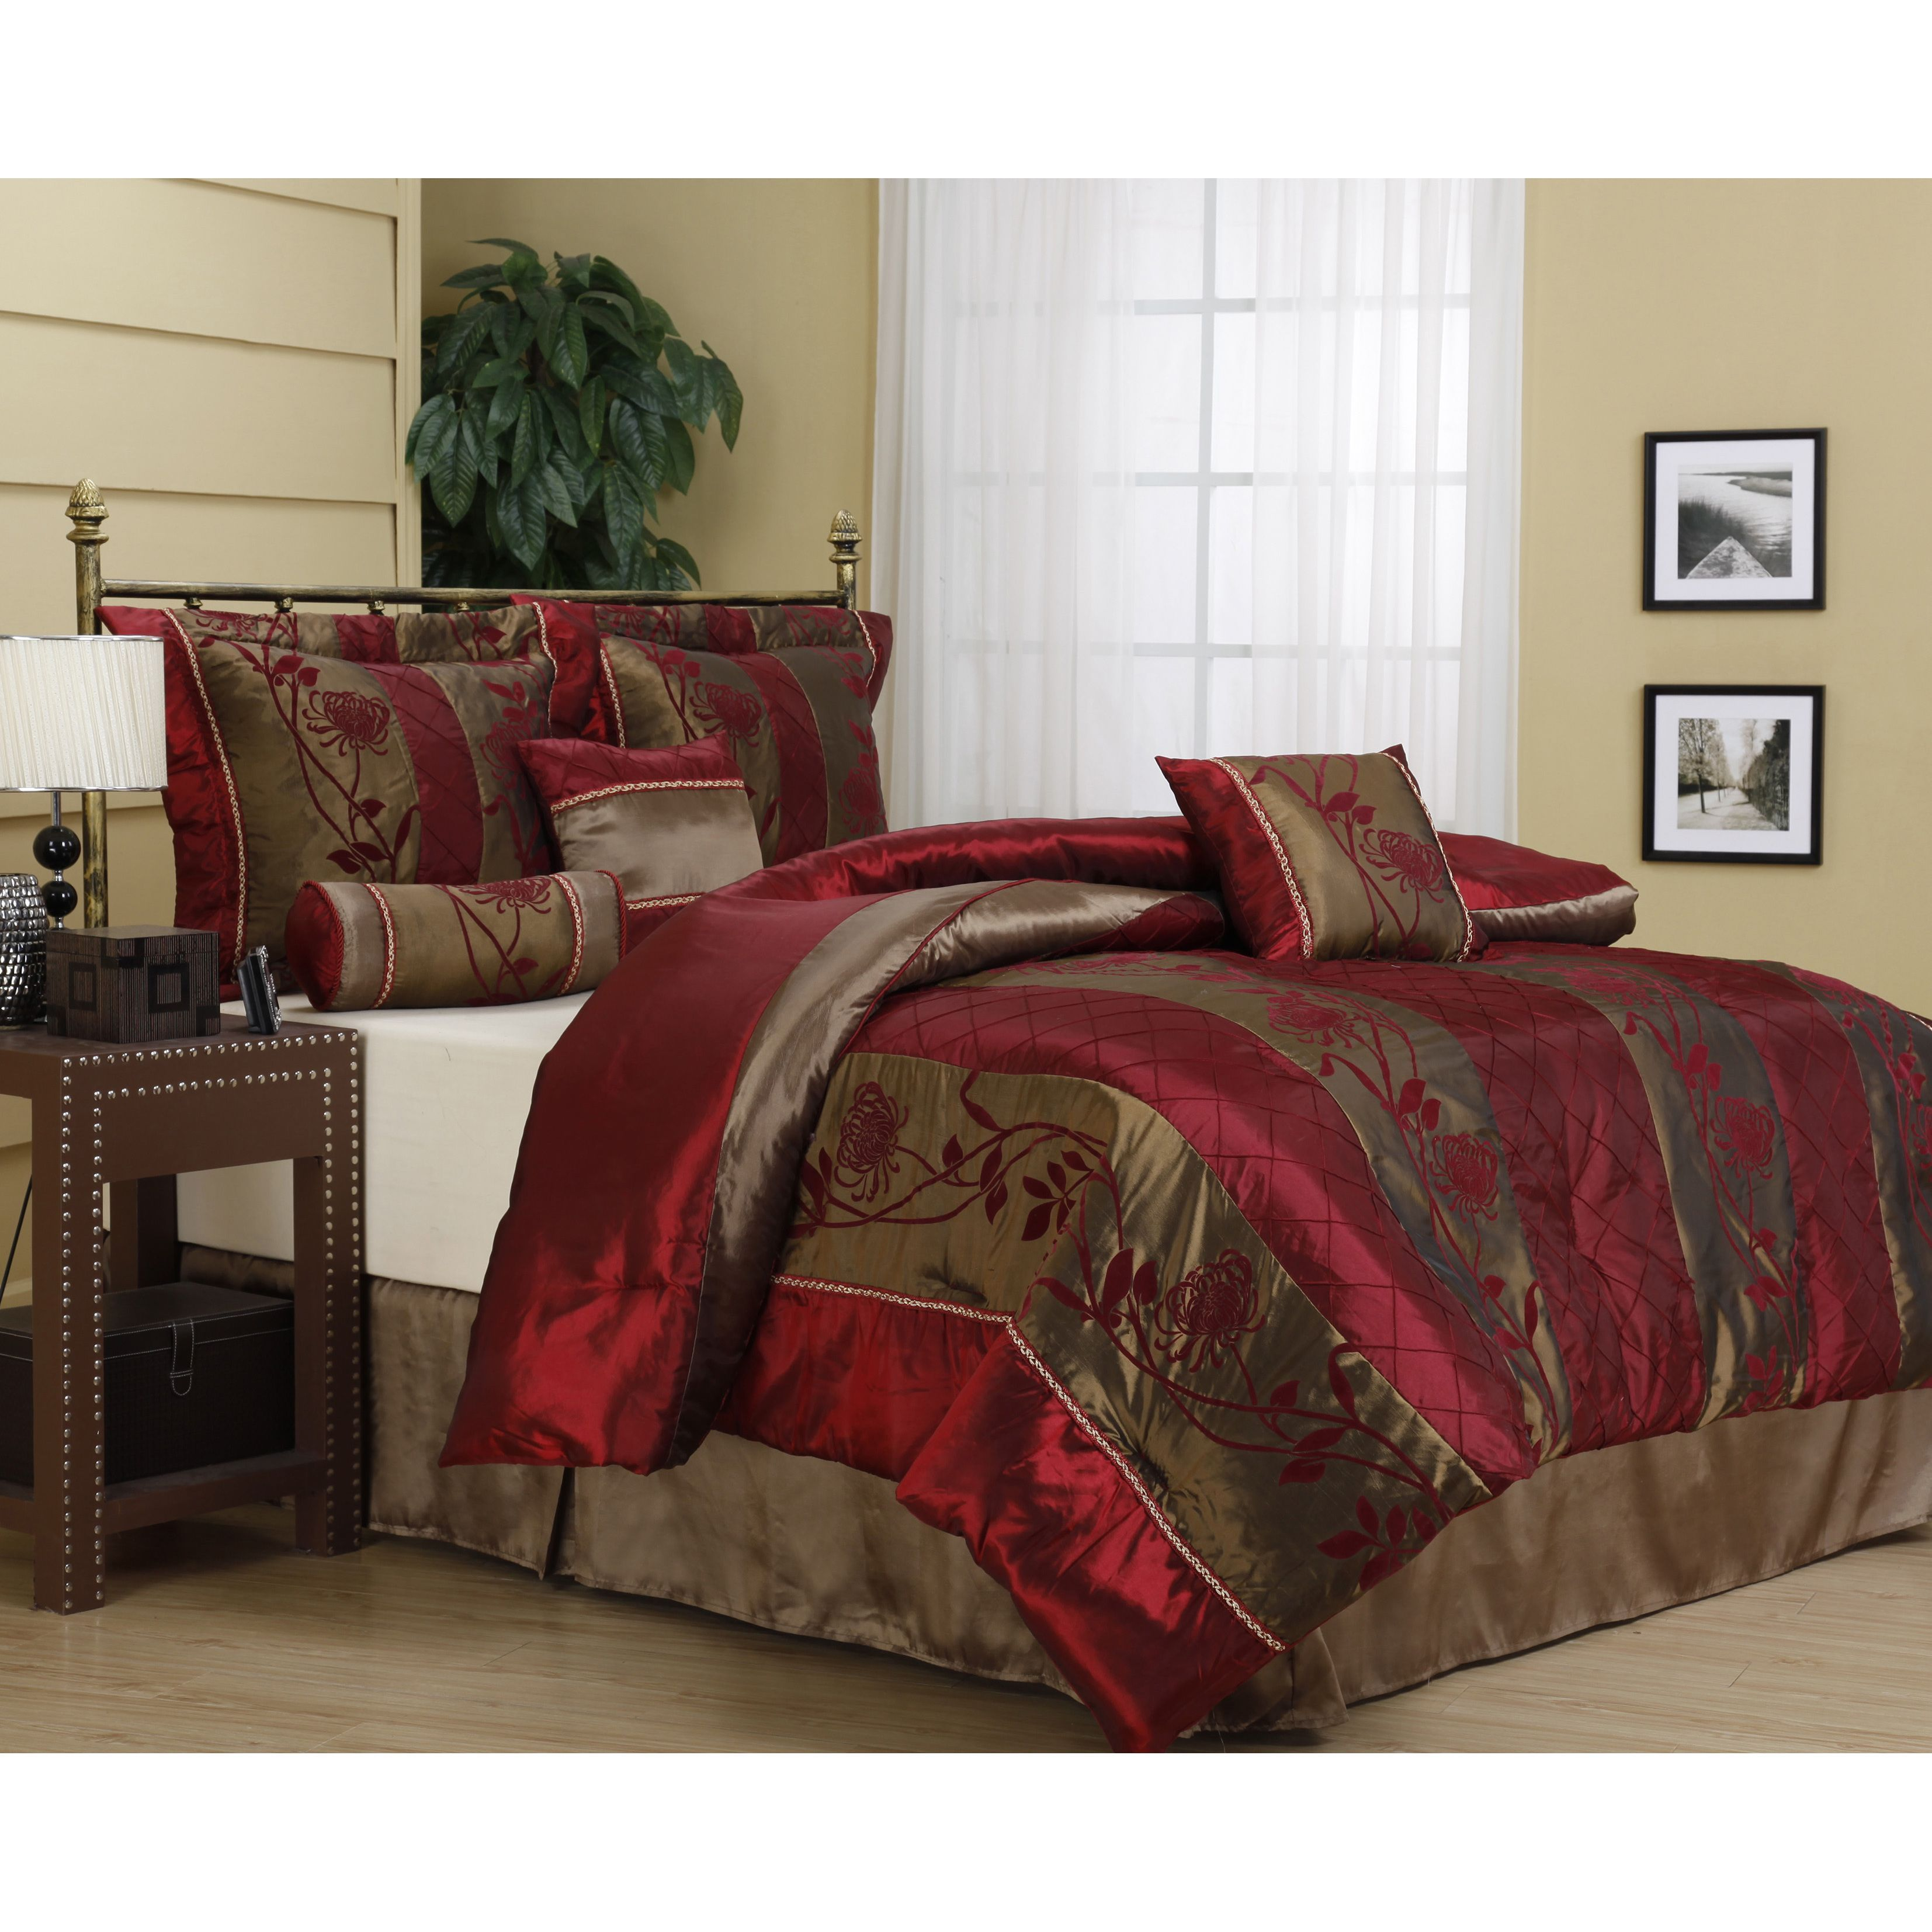 Bedding jardin collection bedding collections bed amp bath macy s - Purple Red Comforter Sets Free Shipping On Orders Over 45 Bring The Comfort